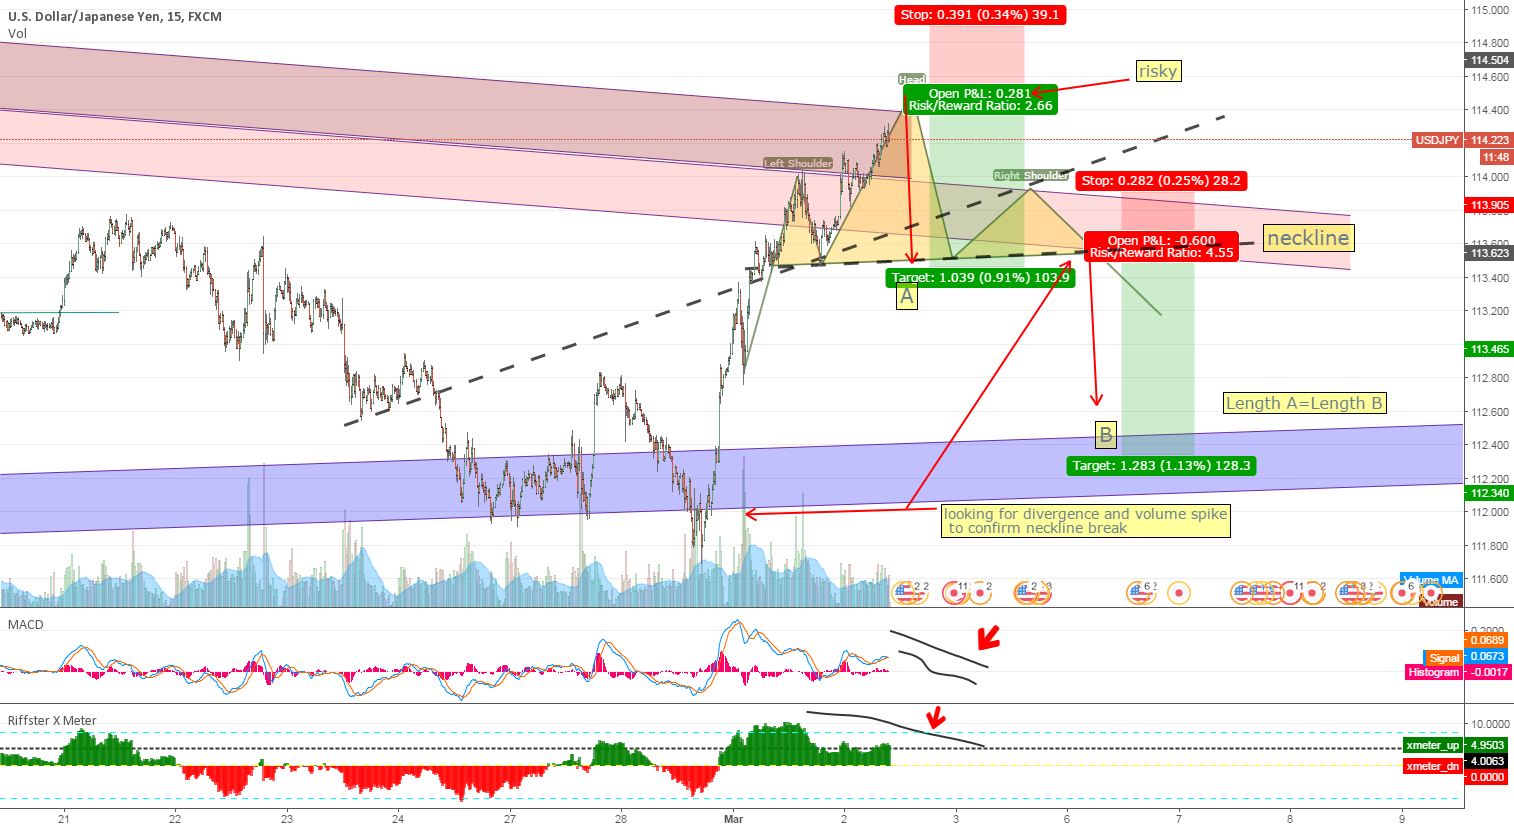 USDJPY idea- Im not in a trade on this yet